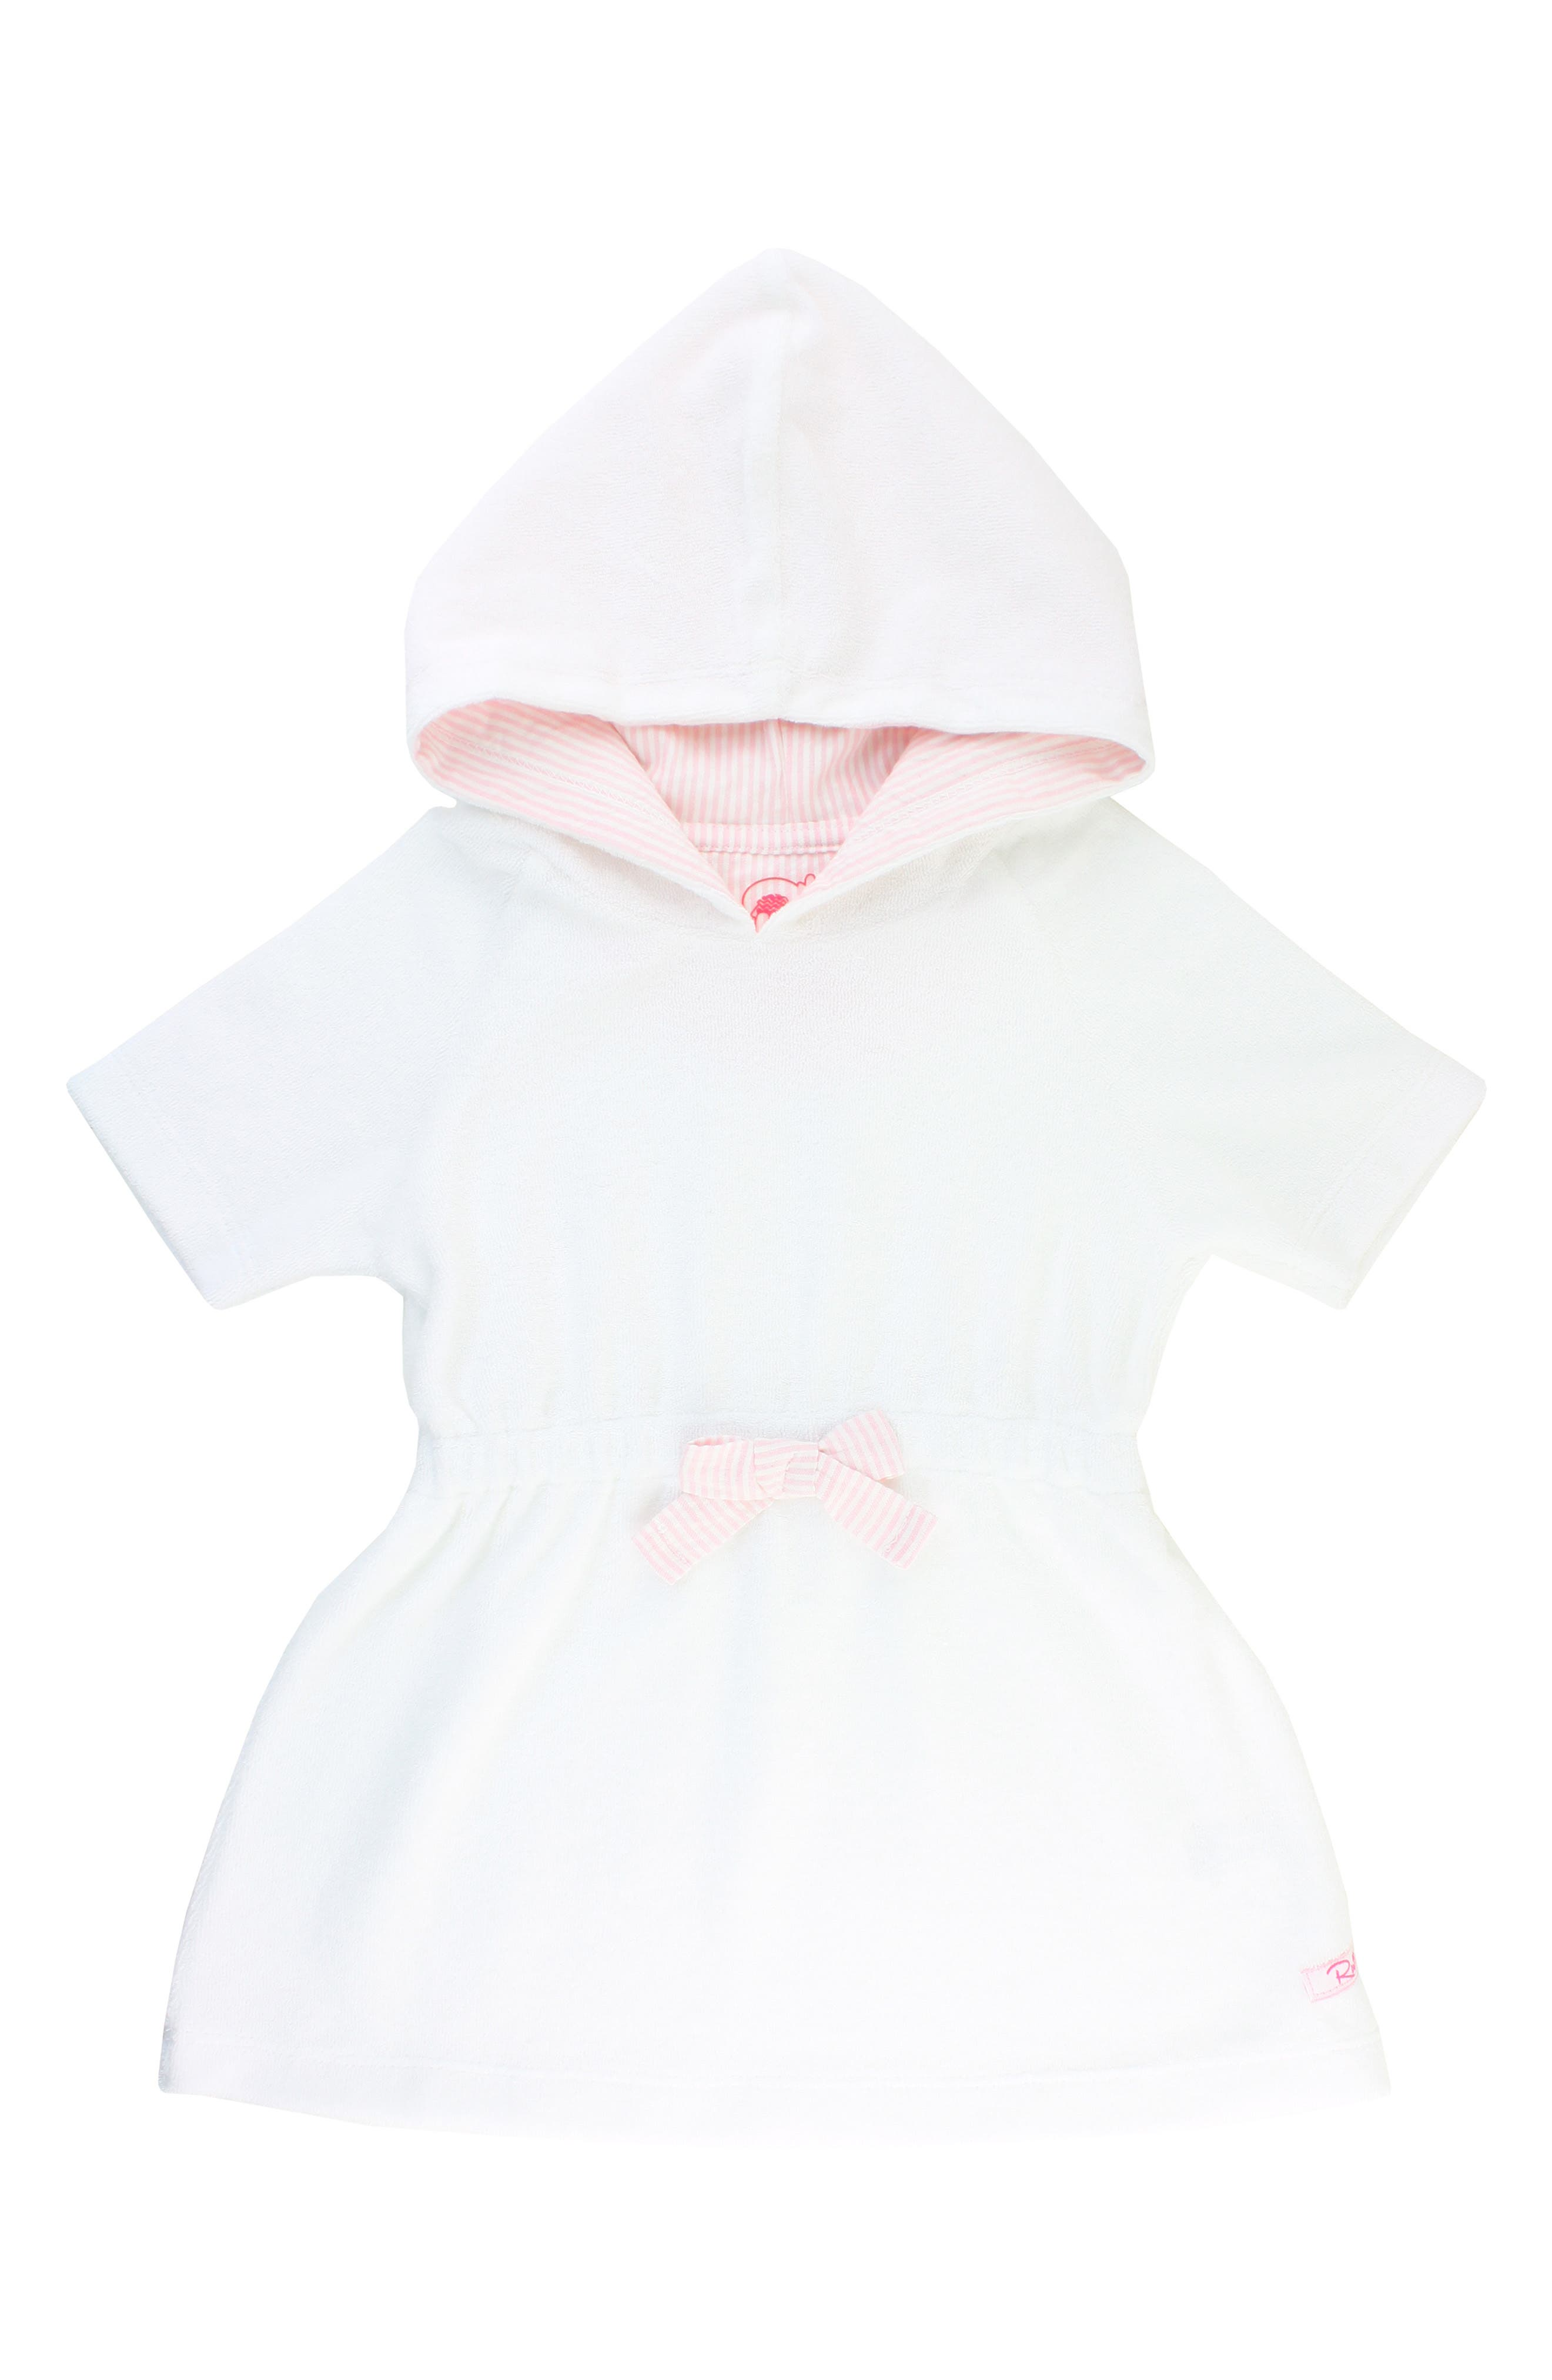 Infant Girls Rufflebutts French Terry Hooded CoverUp Dress Size 1218M  White